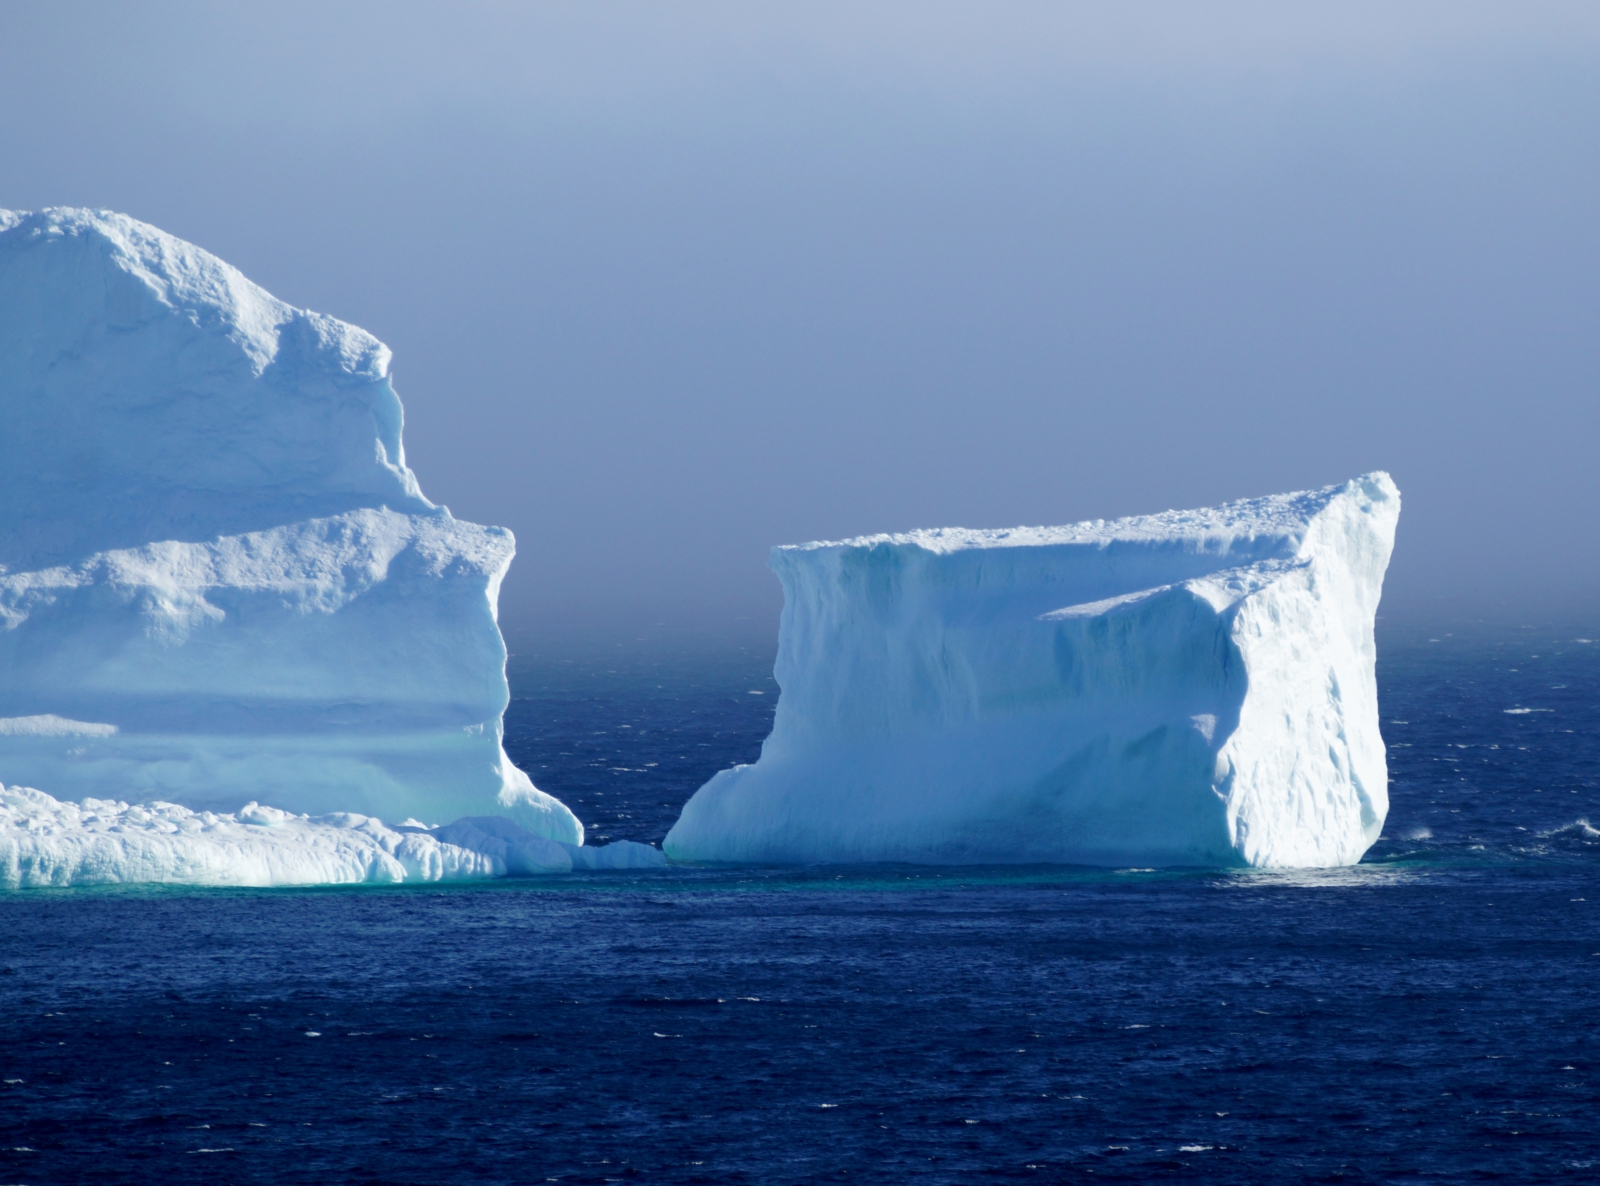 Breathtaking photos show massive icebergs floating by a seaside town